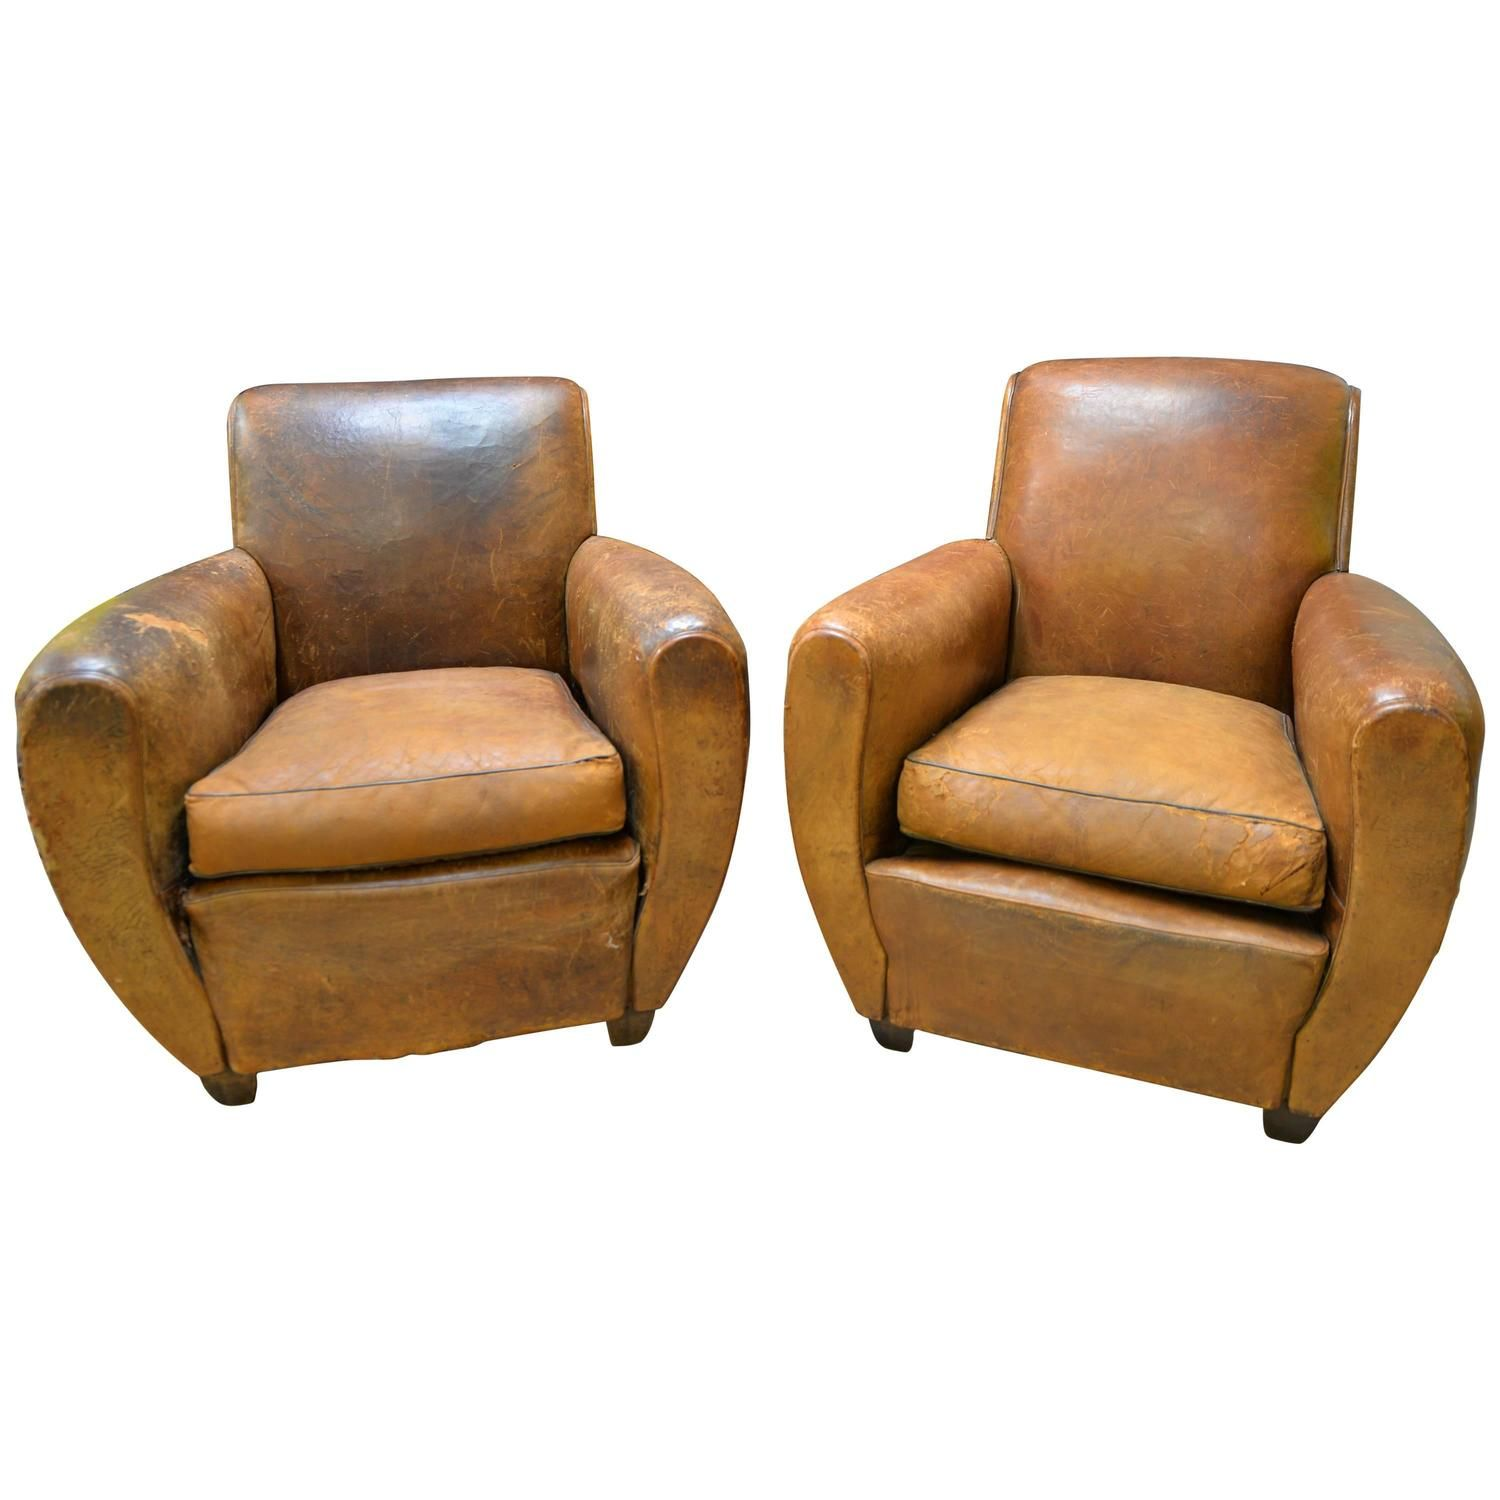 Good 1920s French Art Deco Leather Lounge Cigar Cub Chairs | From A Unique  Collection Of Antique